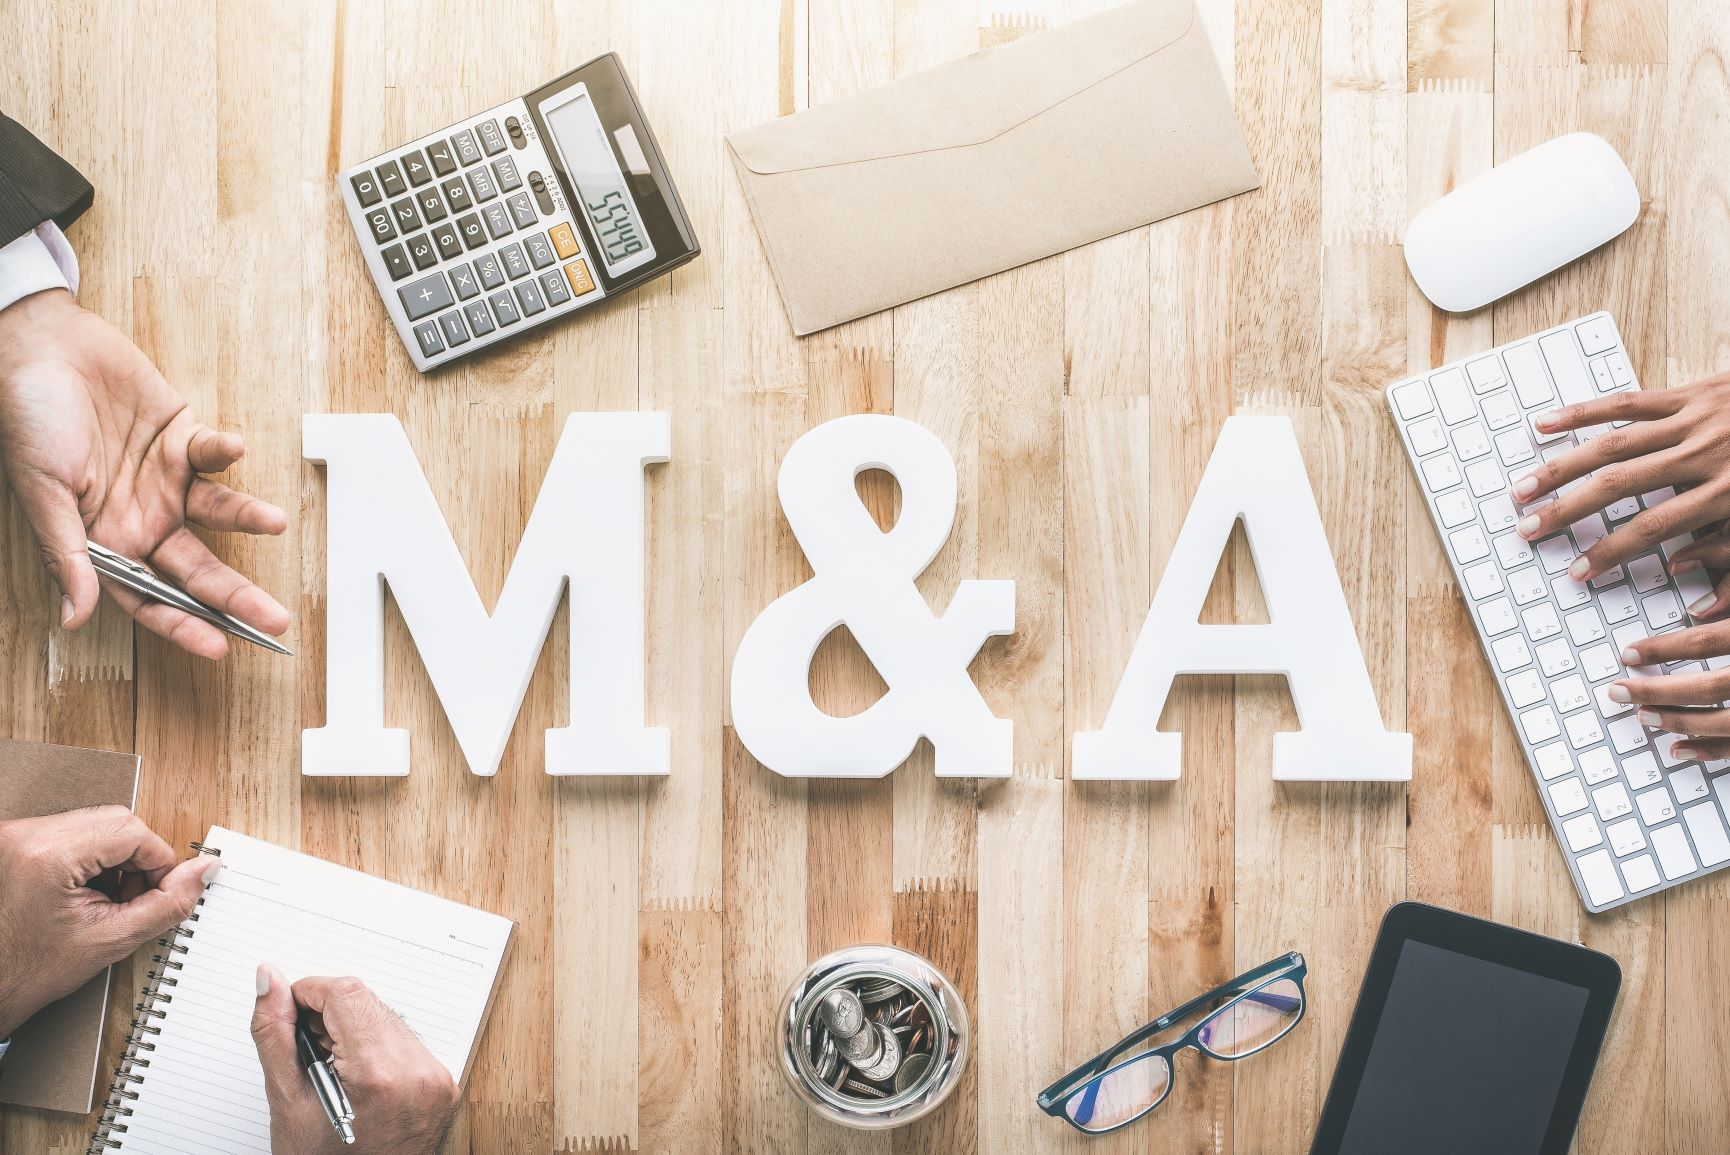 National Webinar: Mergers and Acquisitions - Lessons on how to lead in an industry of constant growth